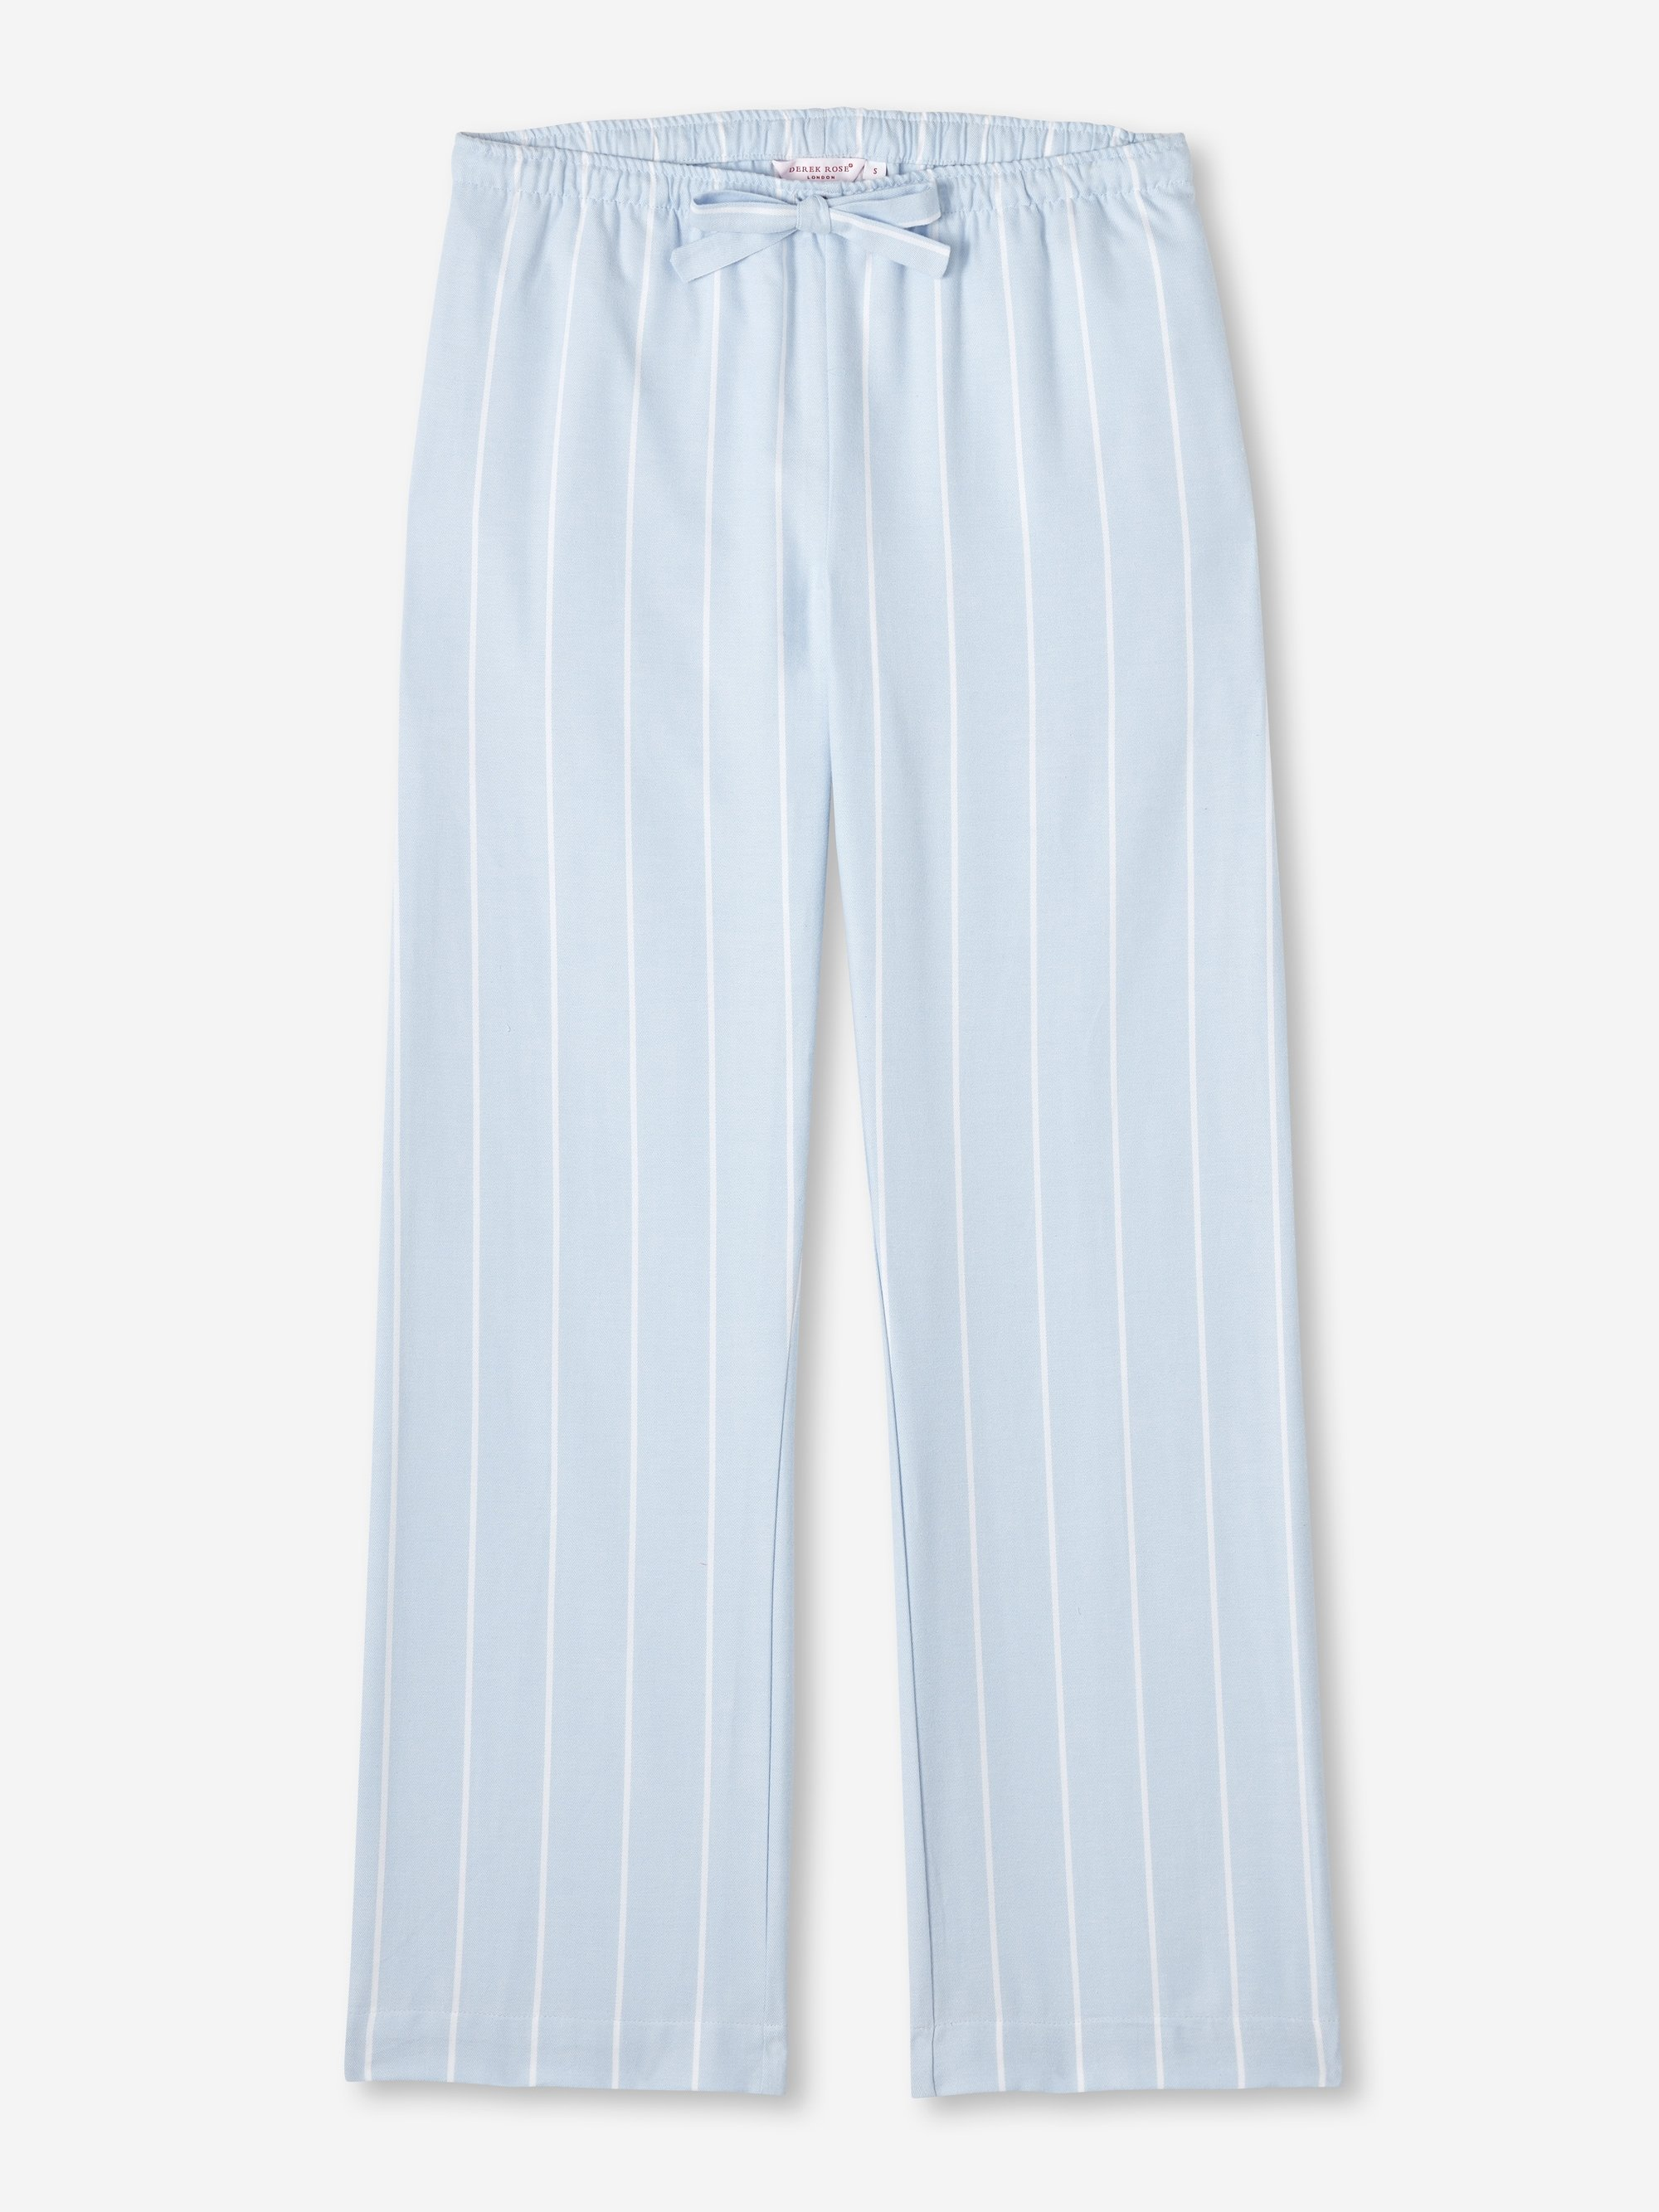 Women's Lounge Trousers Arctic 21 Brushed Cotton Stripe Blue